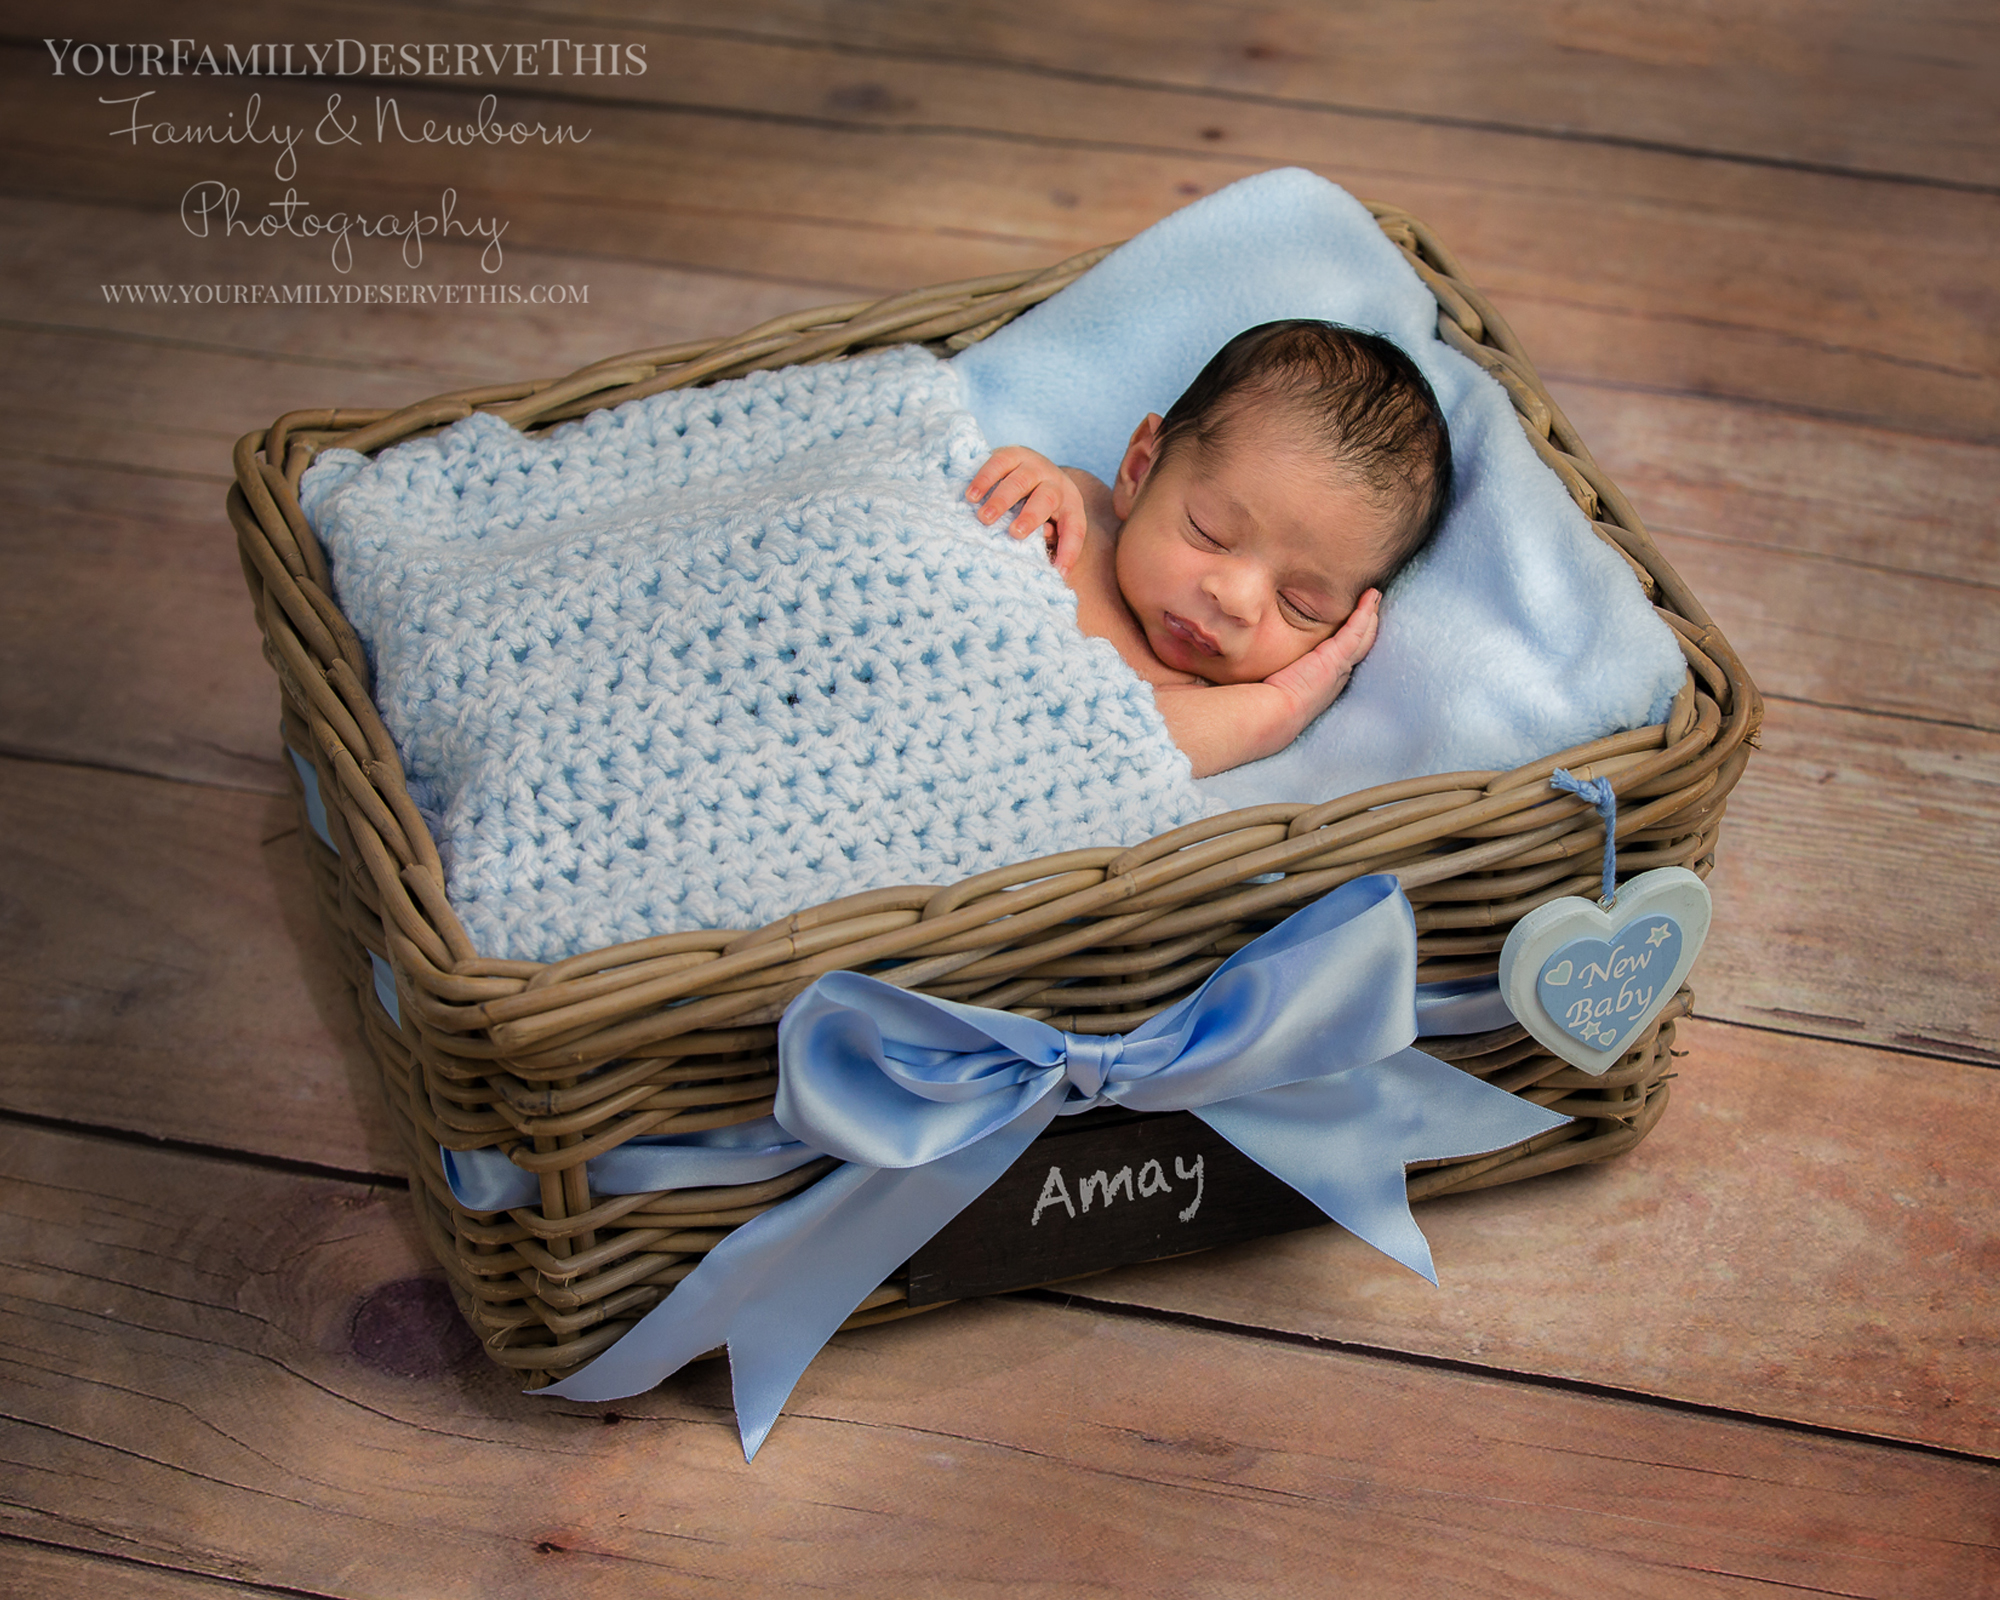 Amay sleeping in our lovely newborn photoshoot basket prop, just 12 days new.  Newborn Photoshoot